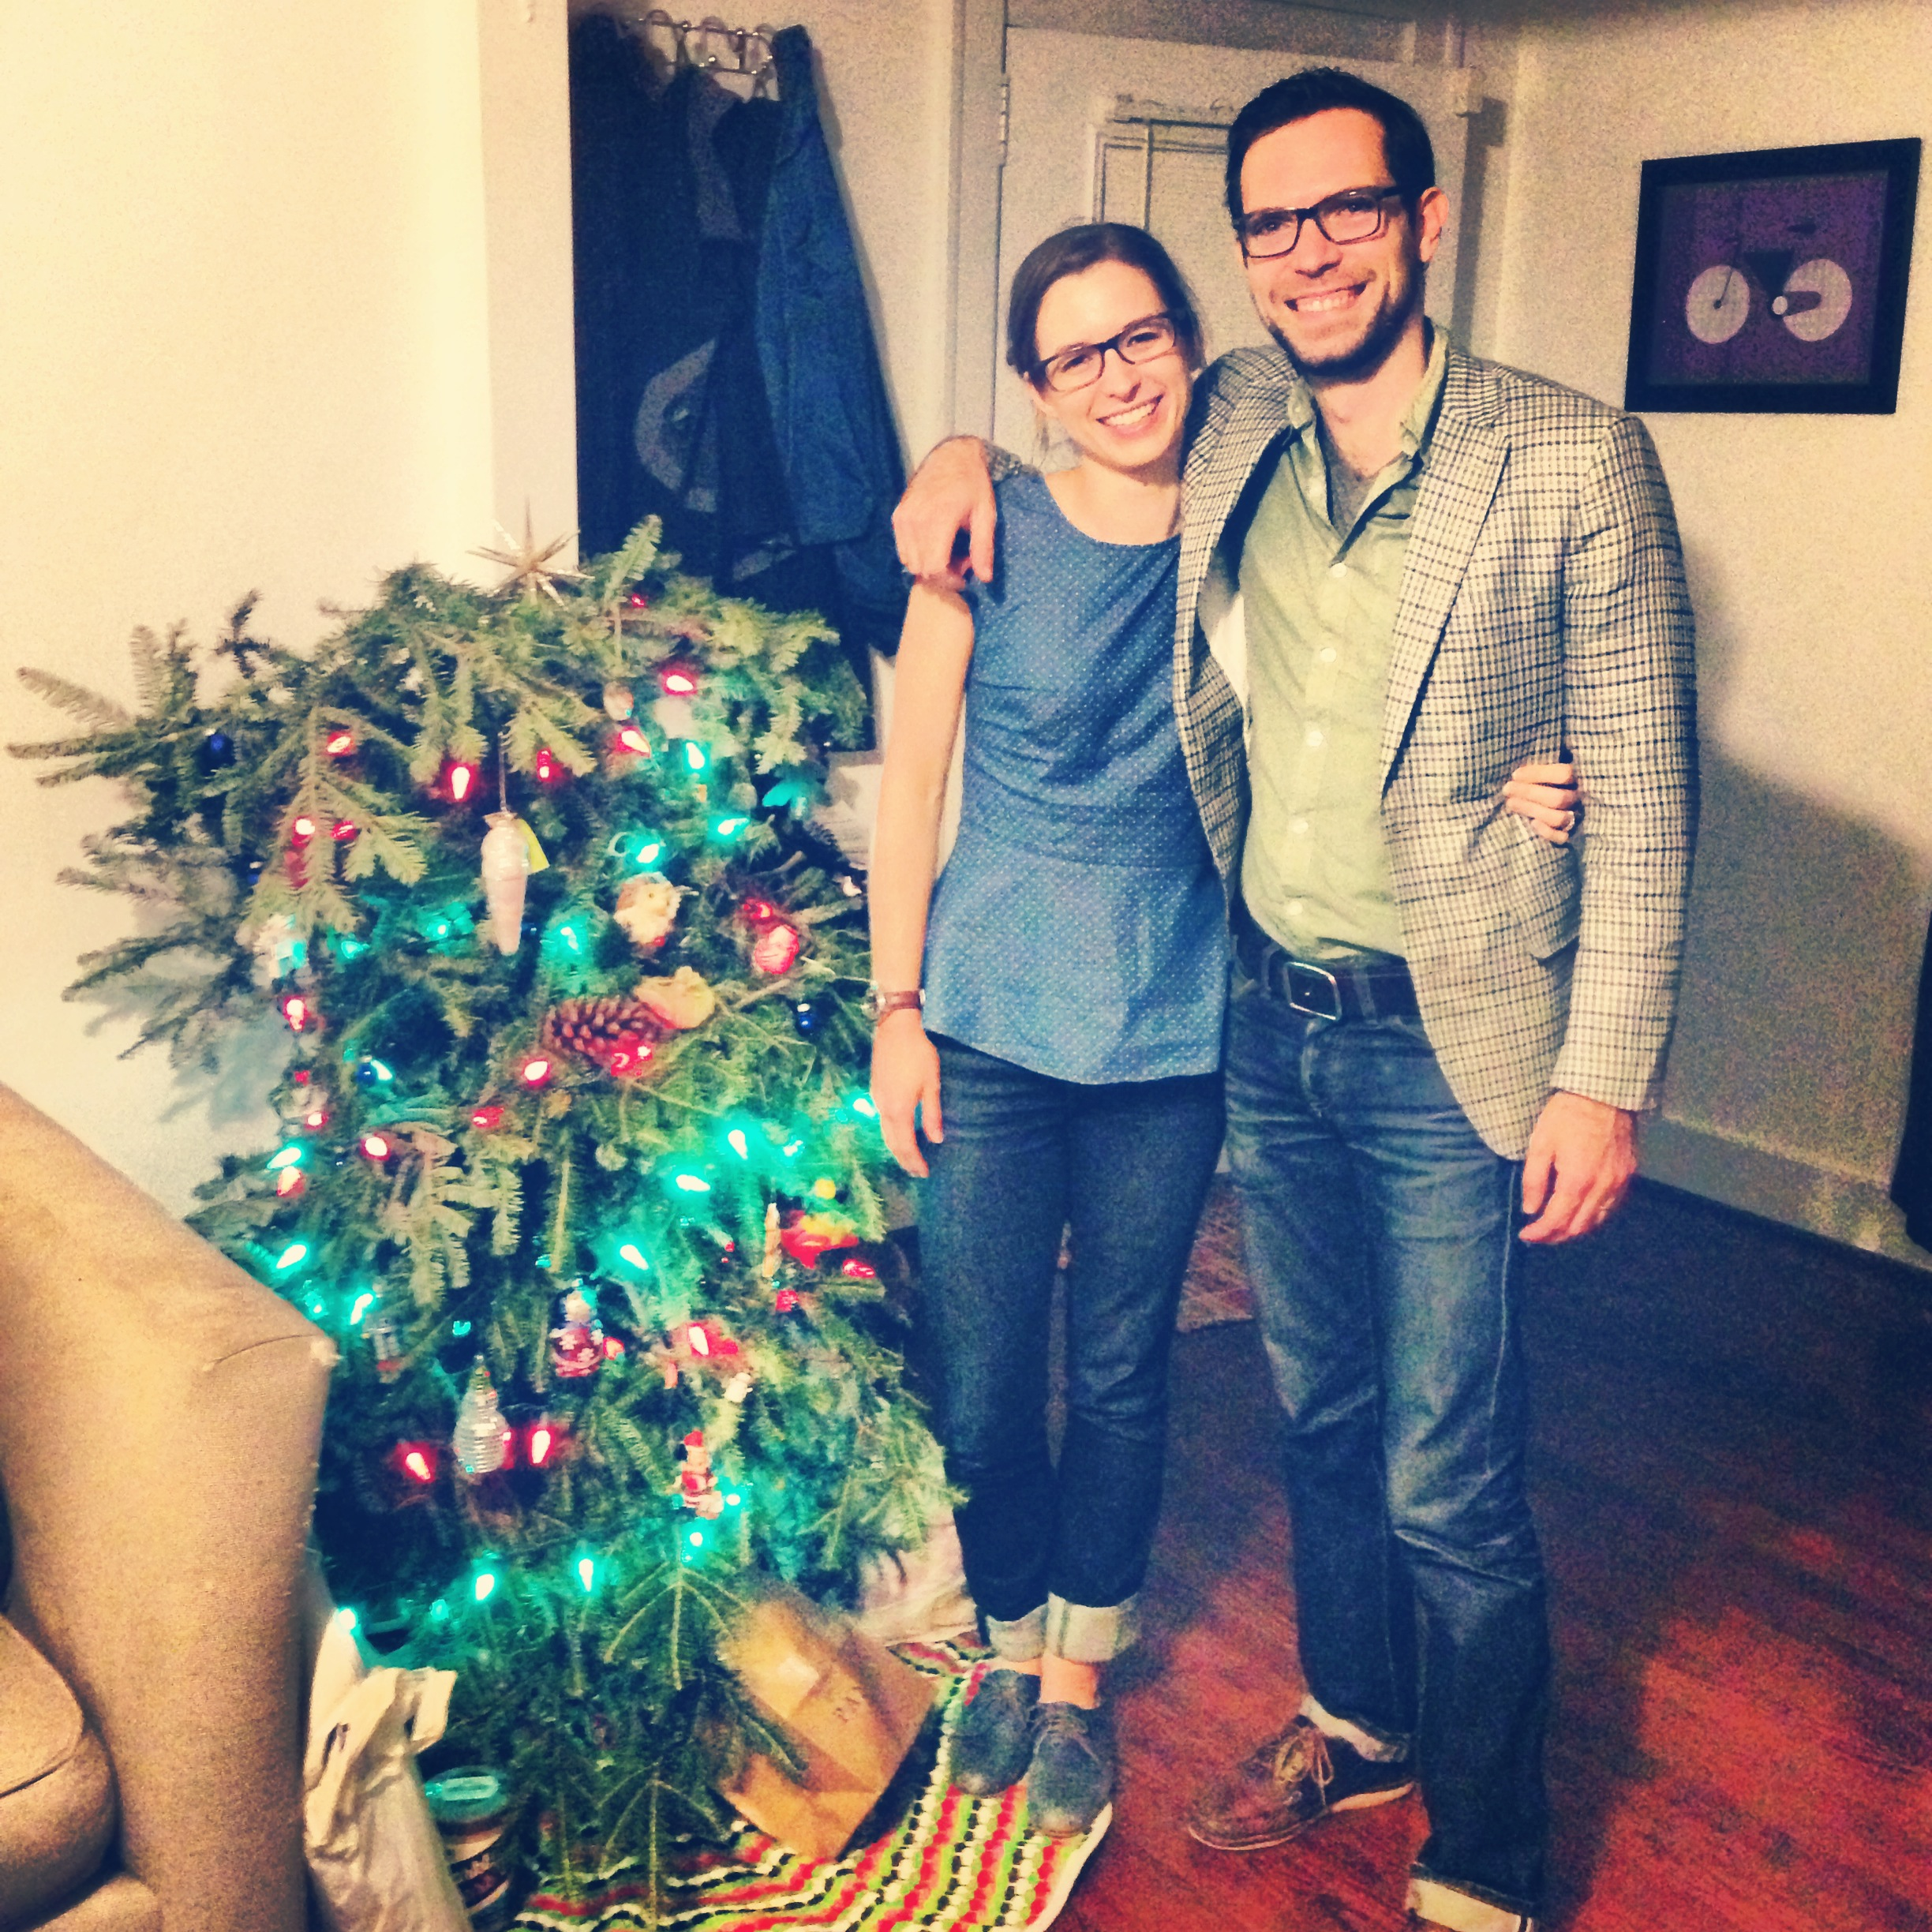 iliza and mike and their crafty tree